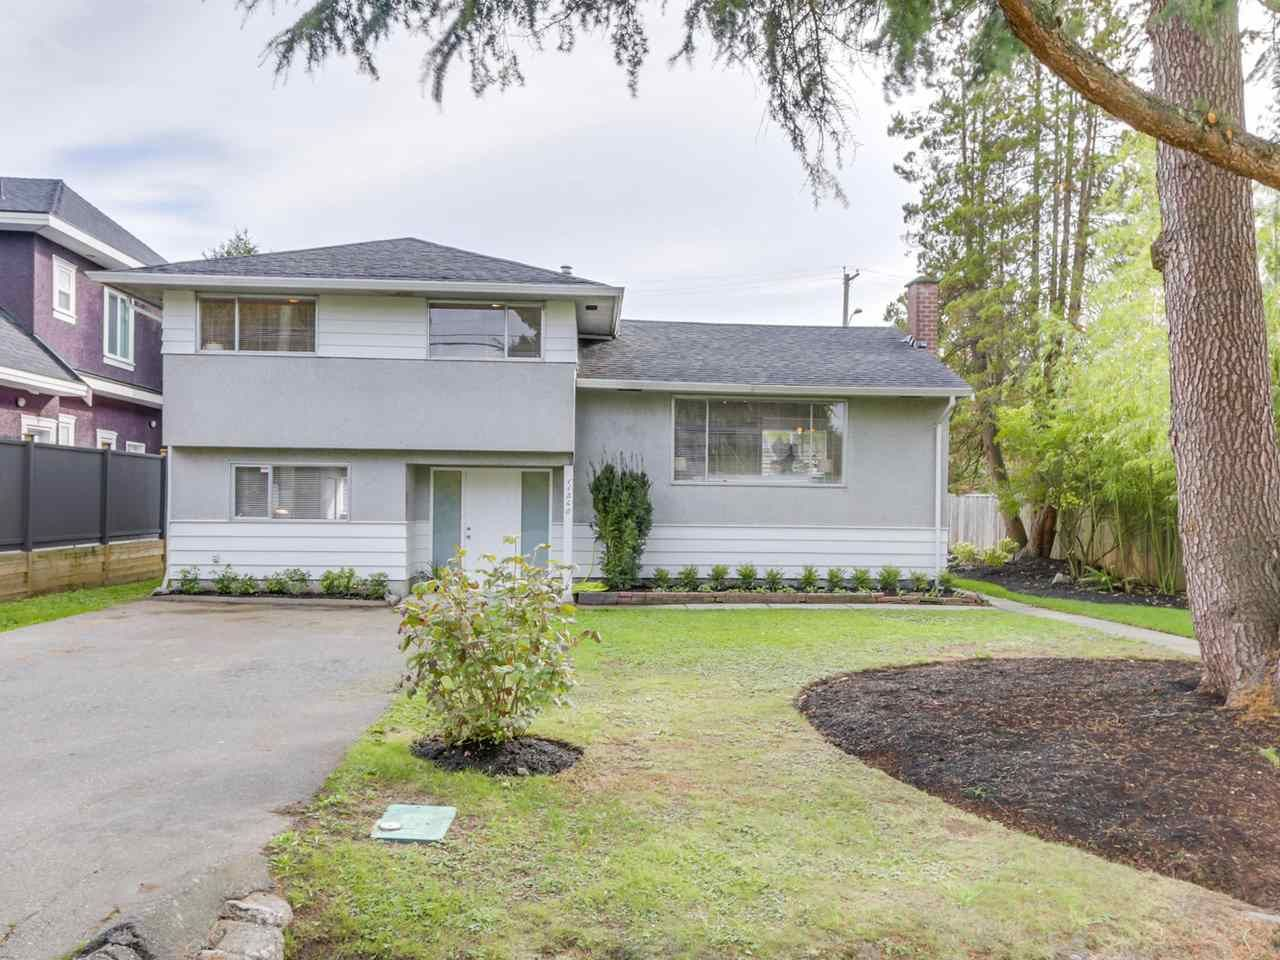 Main Photo: 11540 SEATON Road in Richmond: Ironwood House for sale : MLS®# R2114026